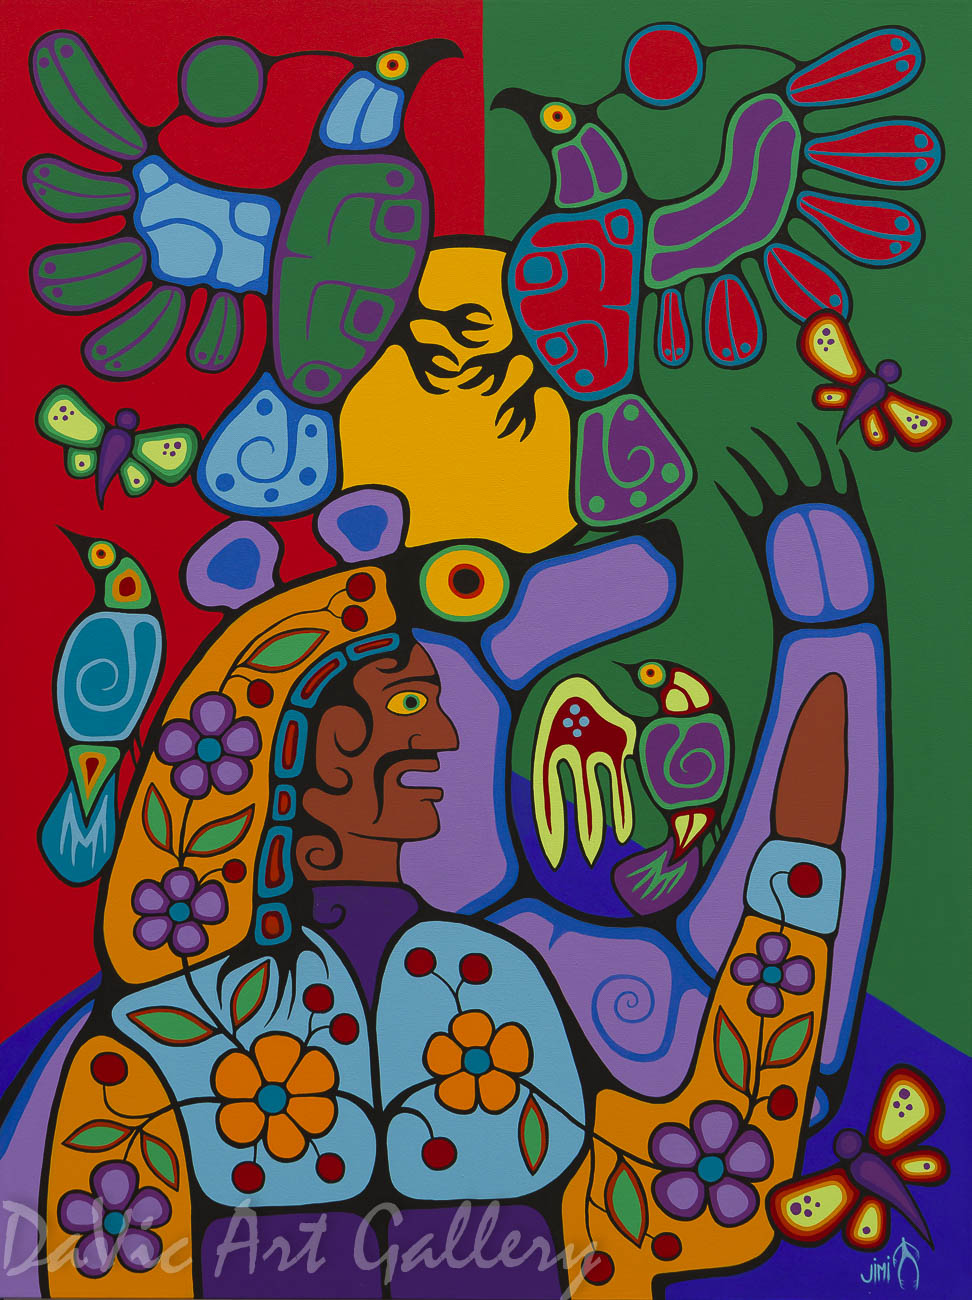 'Connect with Spirit' by First Nations Ojibwe artist Jim Oskineegish